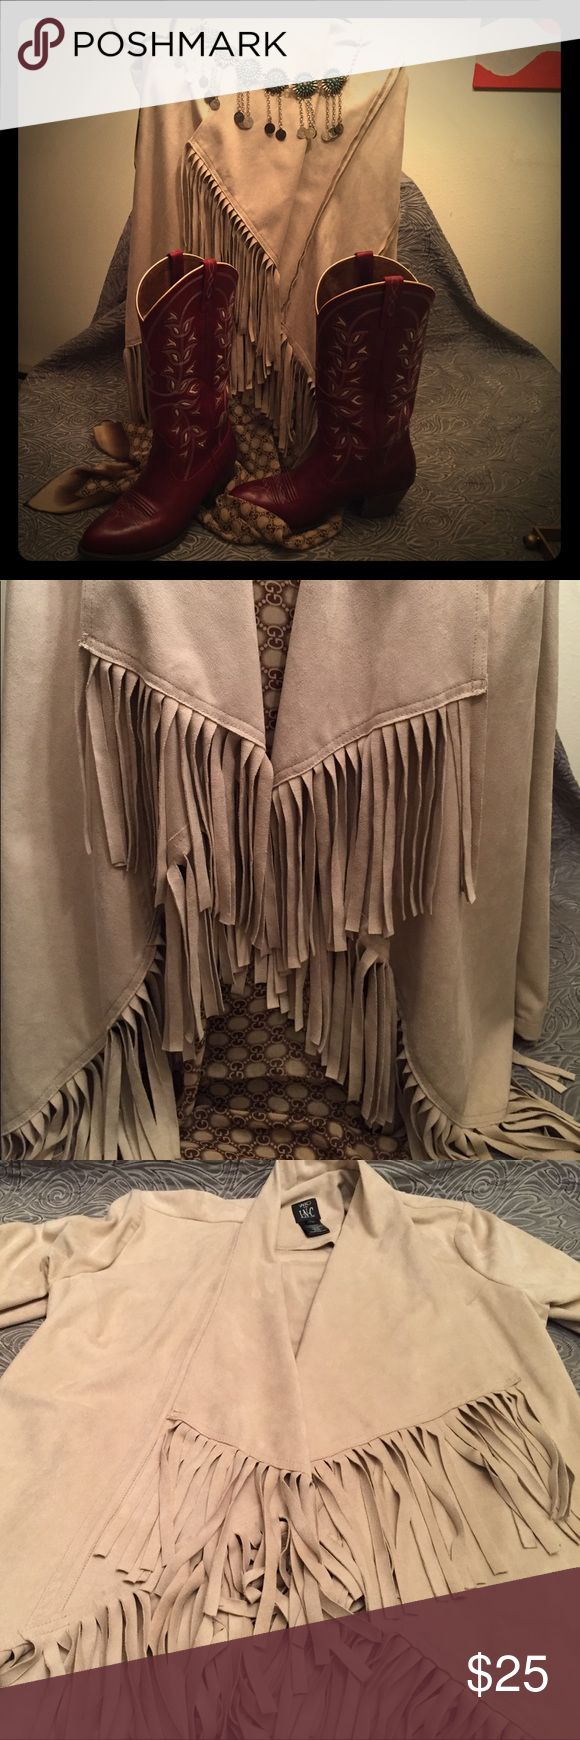 """Vaco for INC Faux Suede Fringed Jacket in Buff Southwestern fashion is so hot right now!  This stunning fringed jacket looks great with boots and jeans or belted over a LBD.  I wore this one time. EUC.  Size M but loose and drapey so will also fit L size. Pit to pit at the smallest draping: 19"""".  Fully open: 22"""". Machine wash cold, line dry INC International Concepts Jackets & Coats Blazers"""